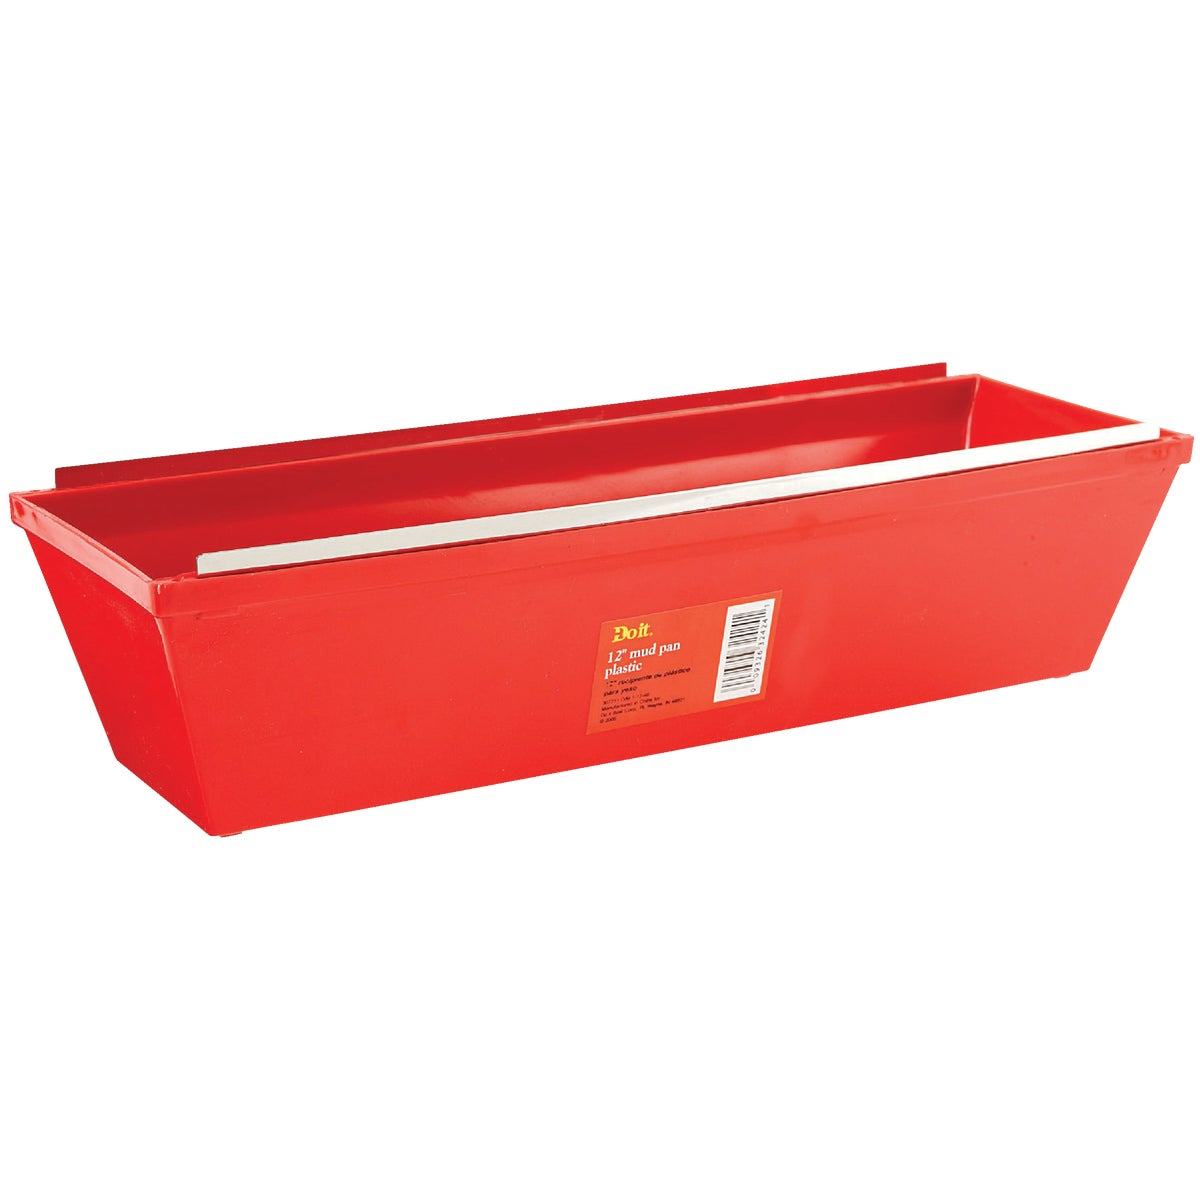 "12"" PLASTIC MUD PAN - 307211 by Do it Best"